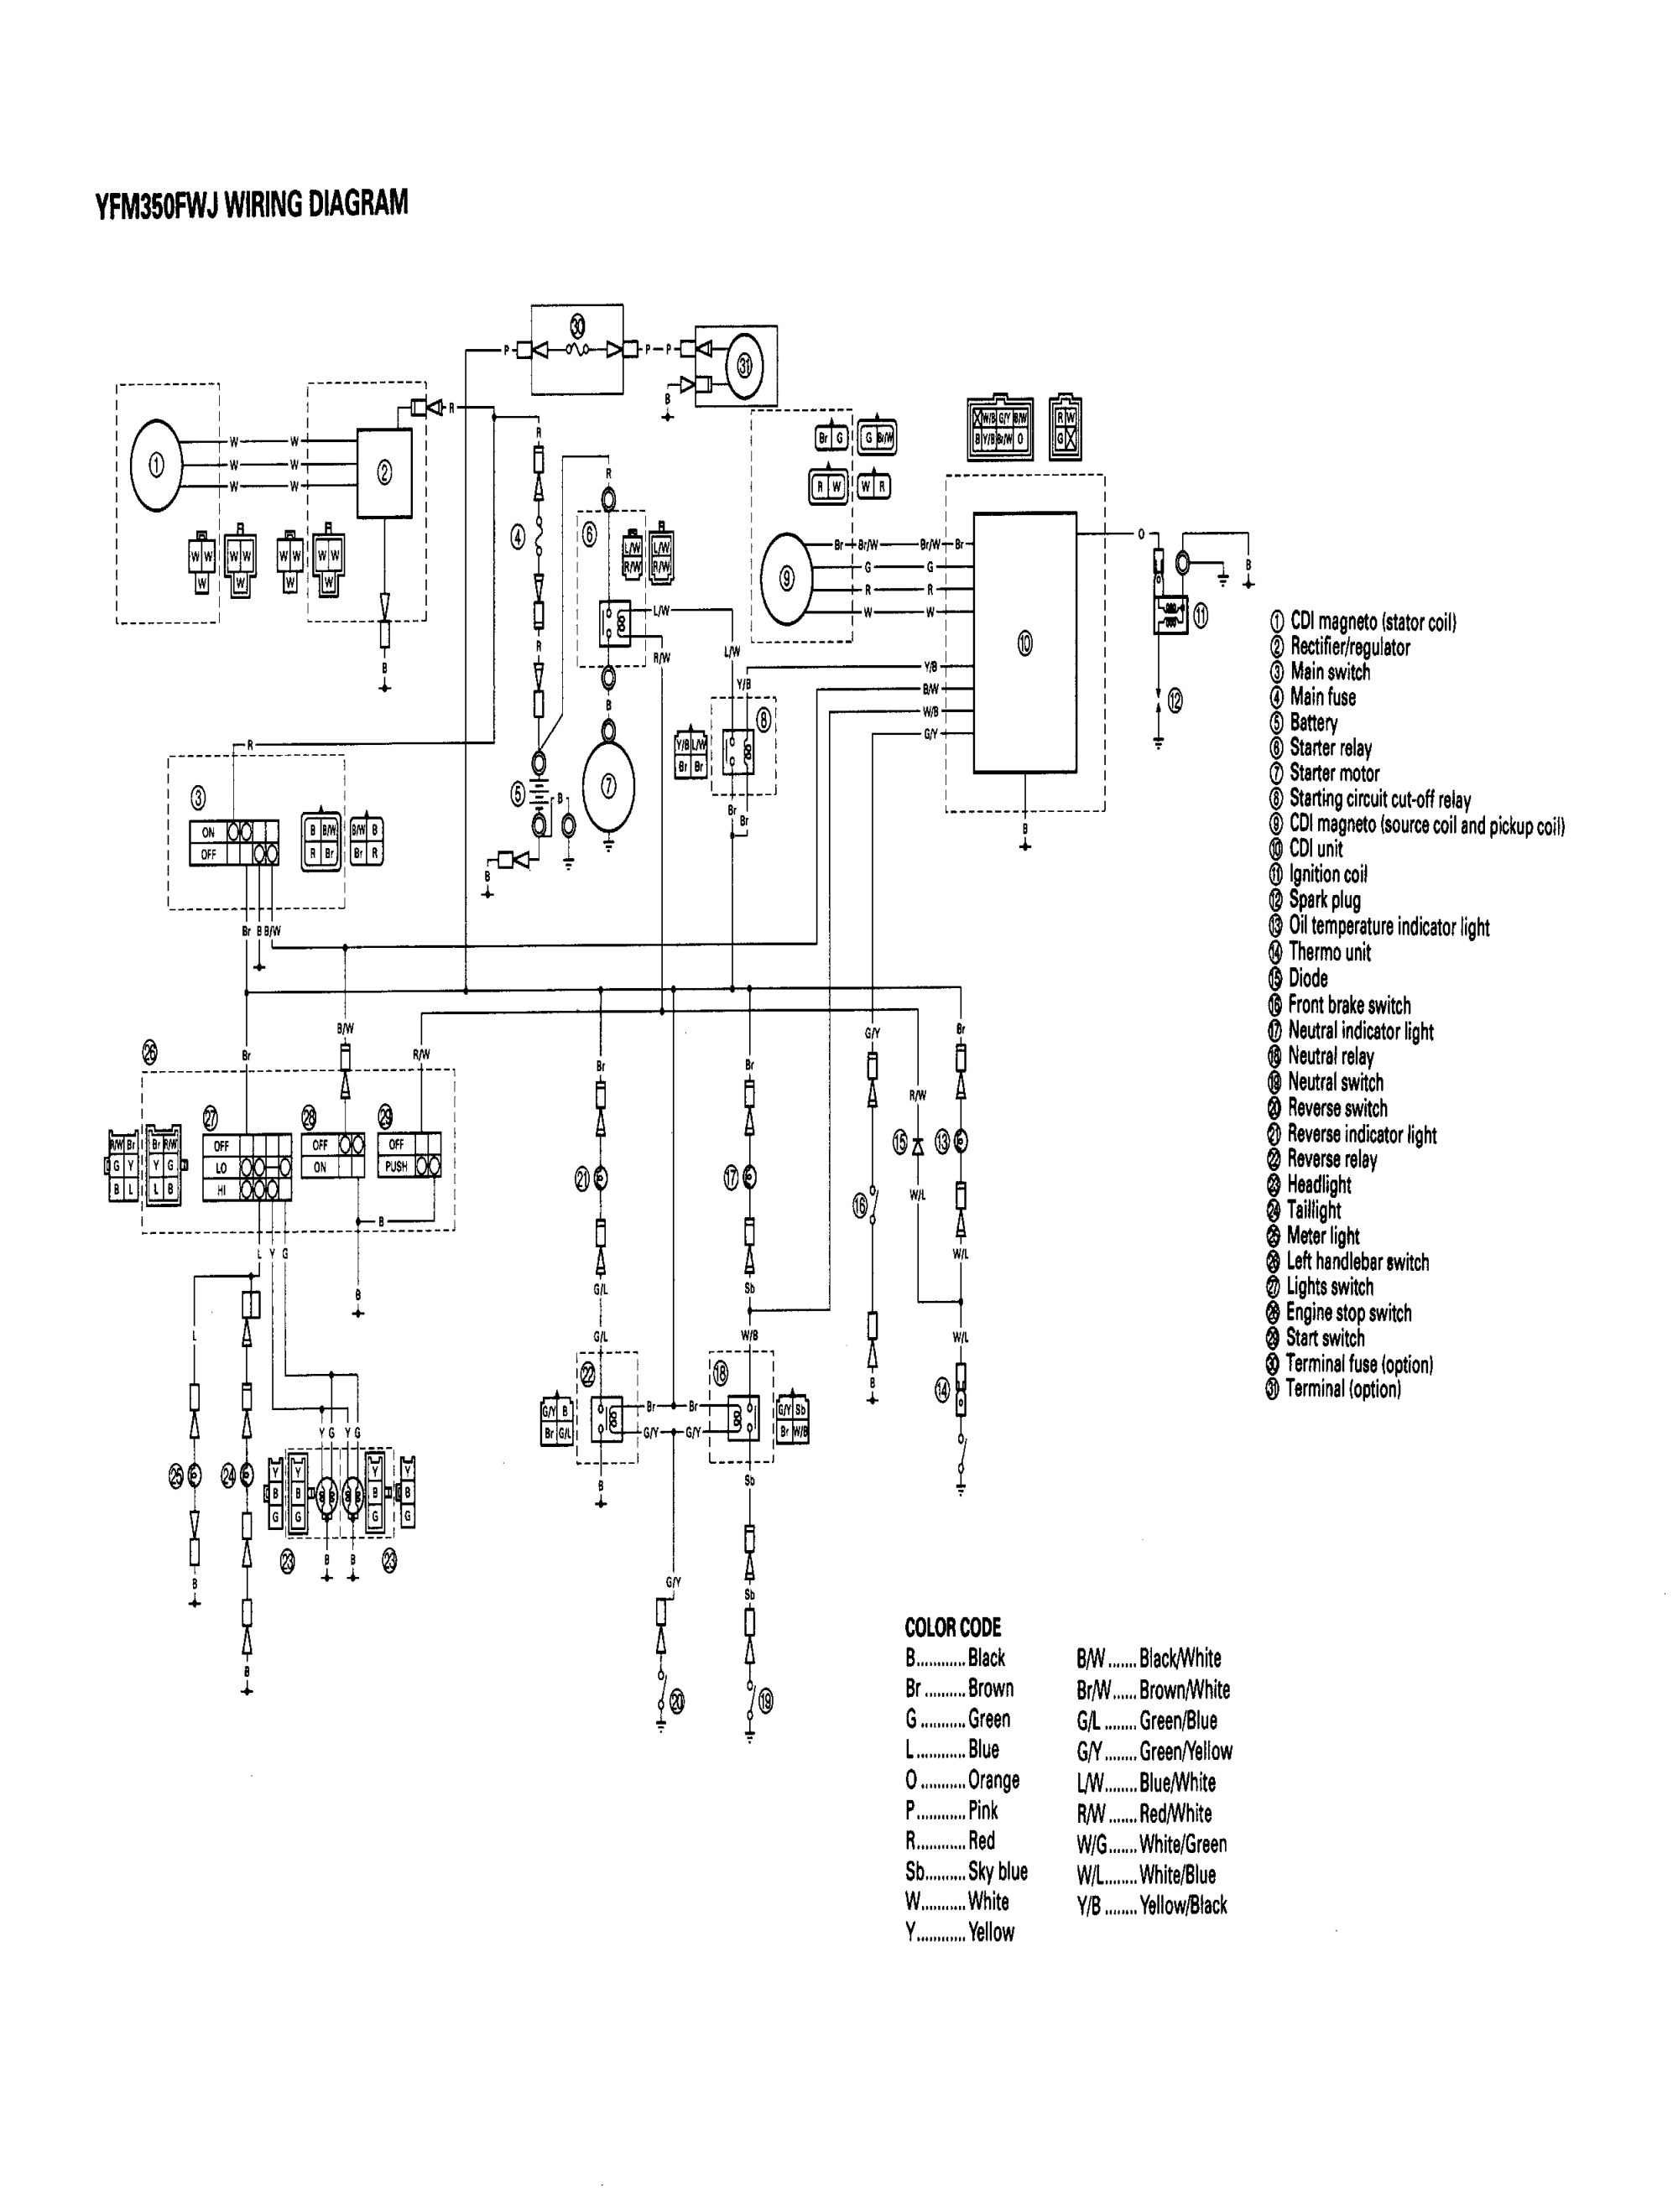 hight resolution of utv dual battery wiring diagram wiring diagram database wiring diagram likewise on yamaha wolverine atv winch solenoid wiring